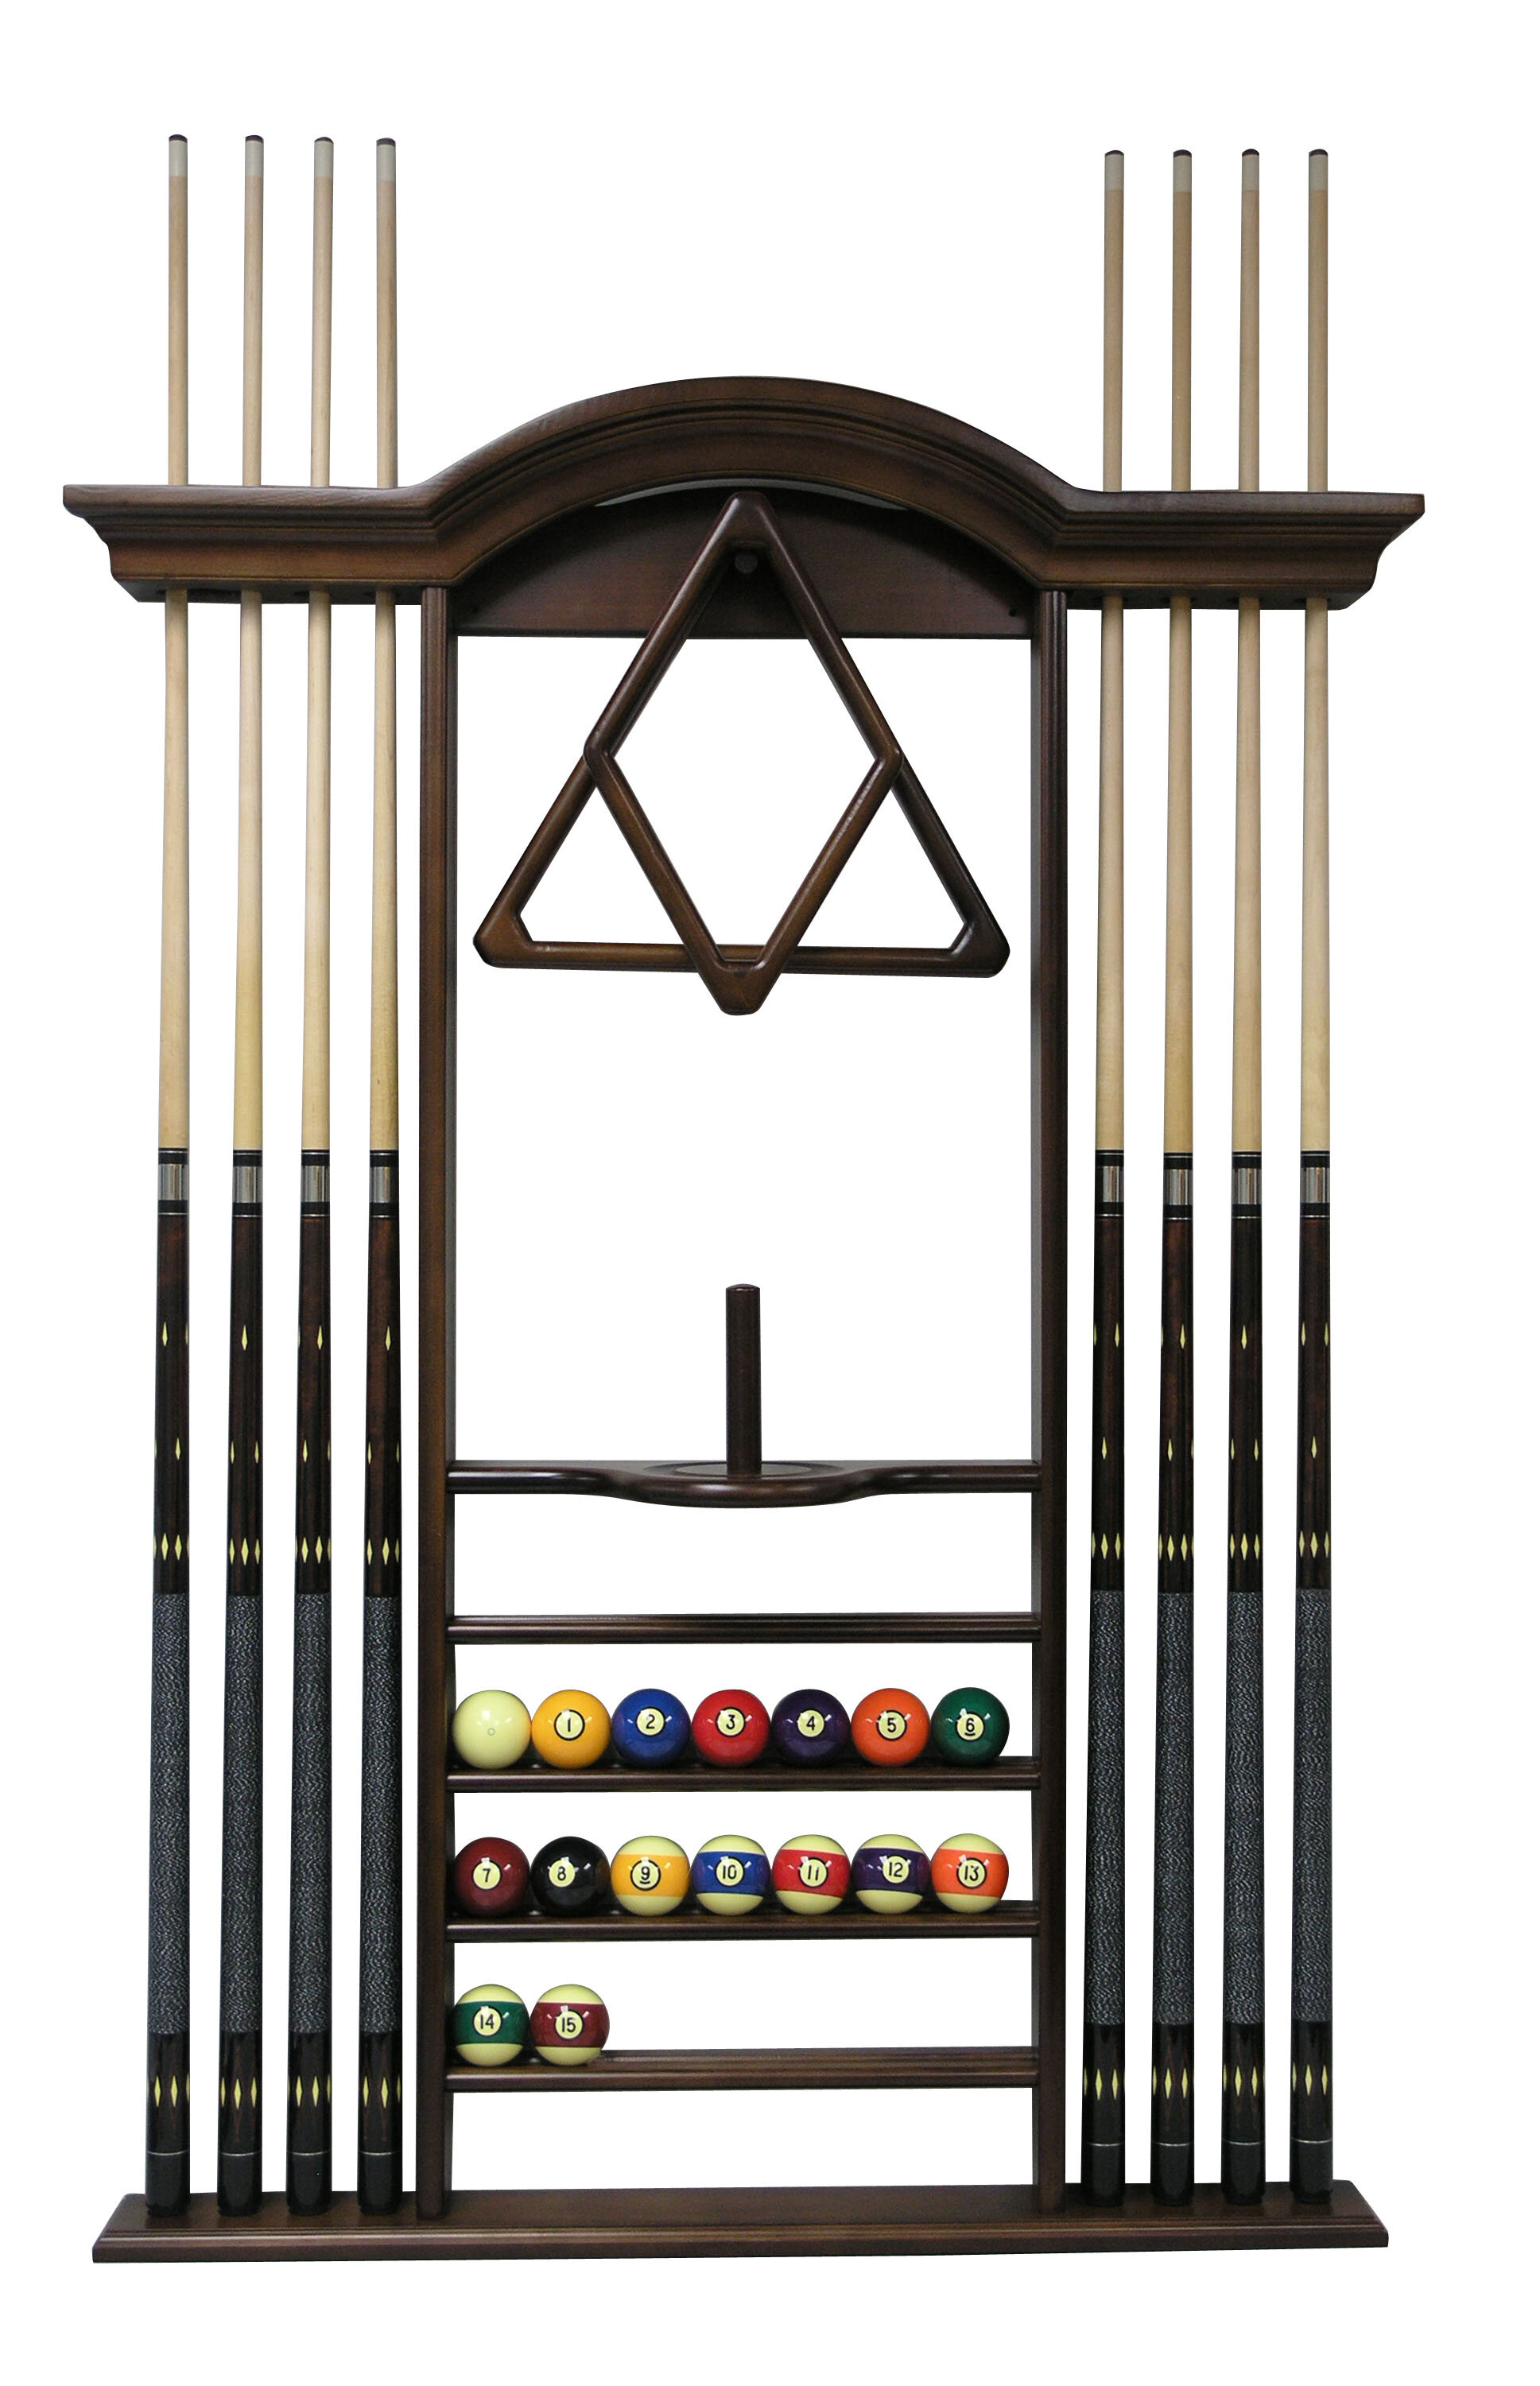 Chocolate Stained Wood 6 Pool Cue Wall Rack With Score Counter Cue